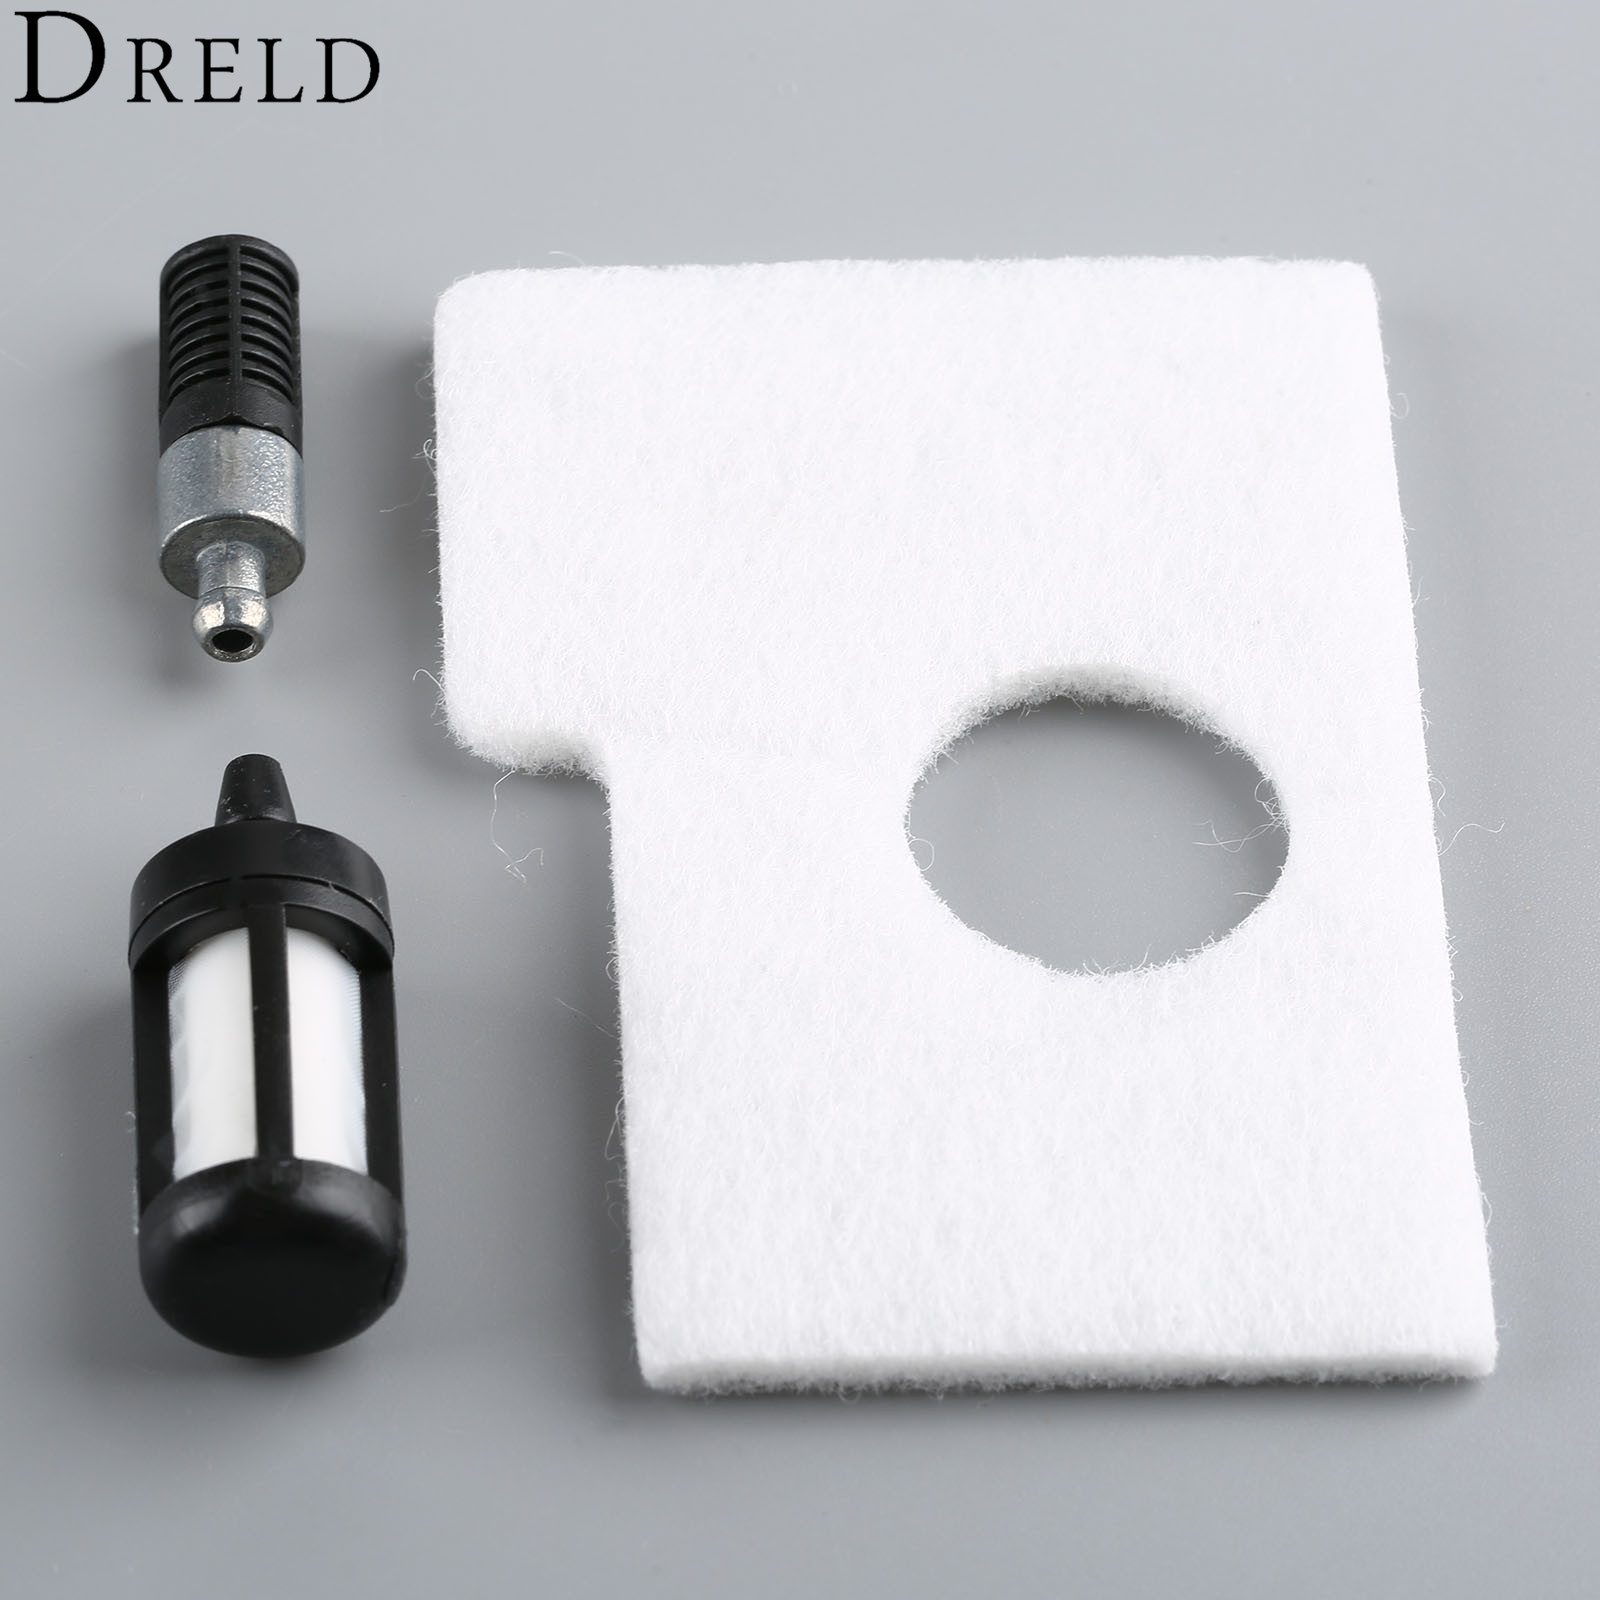 DRELD 3Pcs/set Replacement Air Fuel Oil Filter Cleaner For STIHL Chainsaw 017 018 MS170 MS180 # 1130 358 7700 Garden Tools